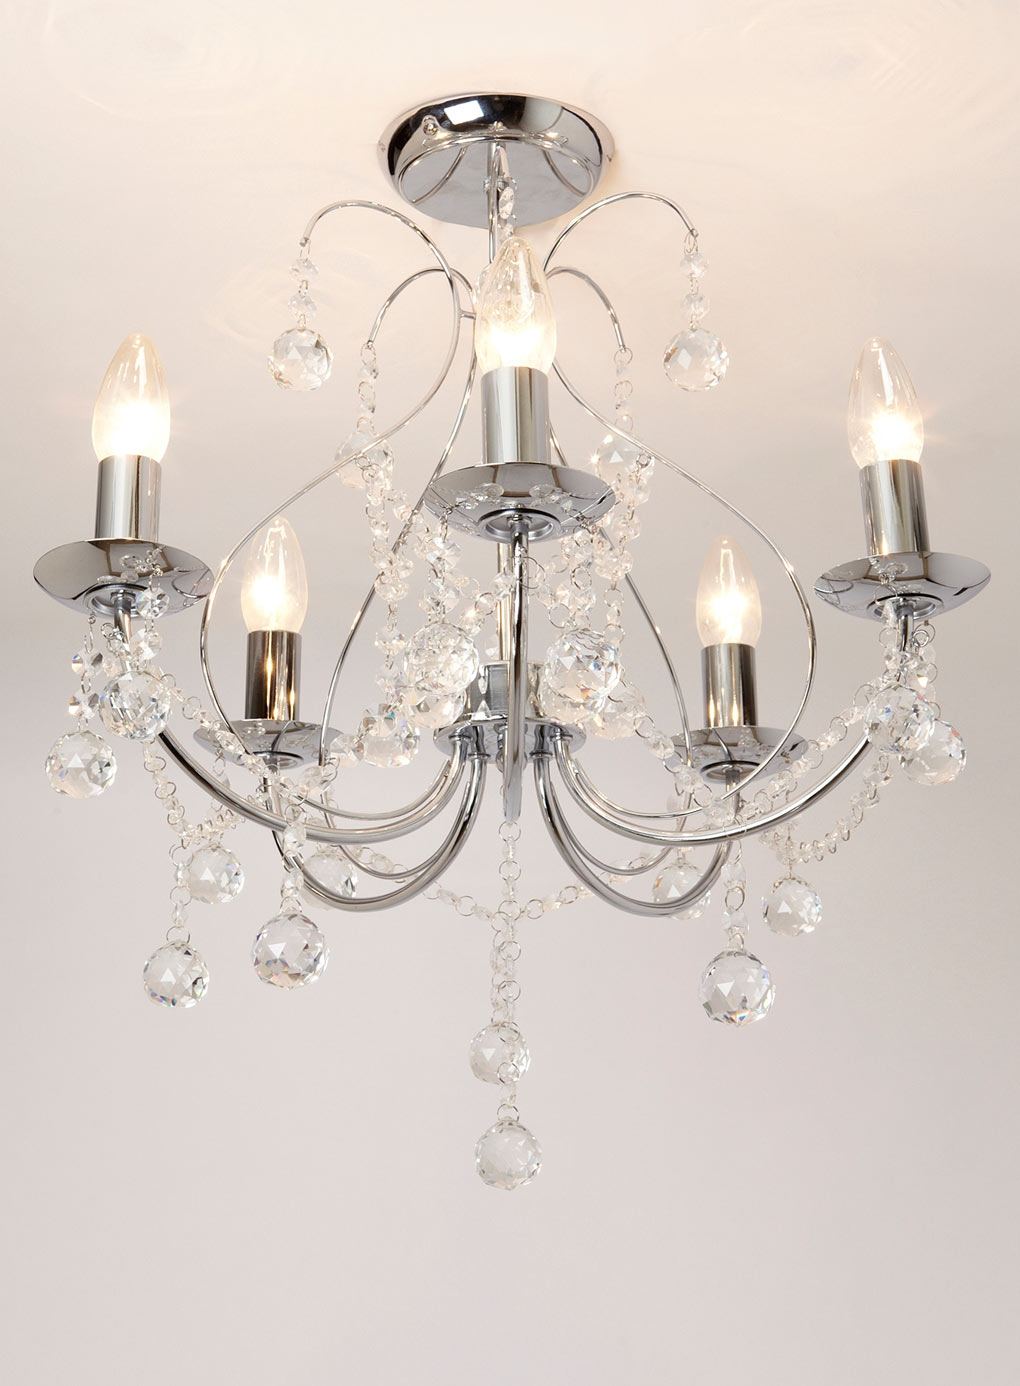 Sapparia 5 Light Flush Chandelier Bhs Chrome And Crystal Glass Inside Flush Fitting Chandeliers (#11 of 12)